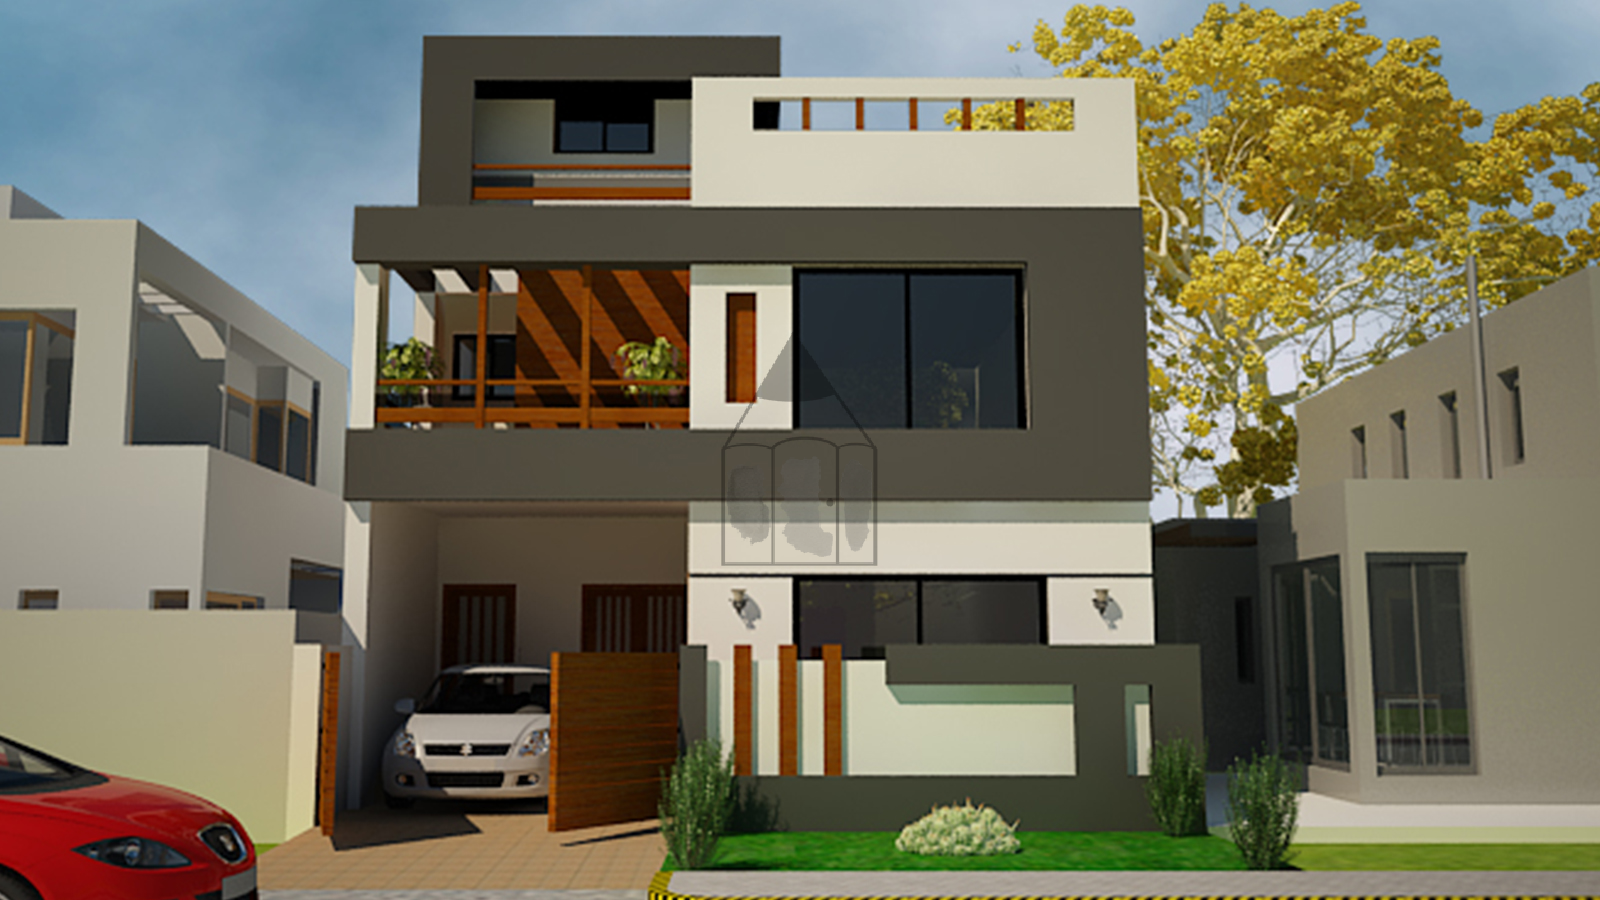 Charmant 5 Marla House Front Design | This Is A Standard 5 Marla House Front Design  With